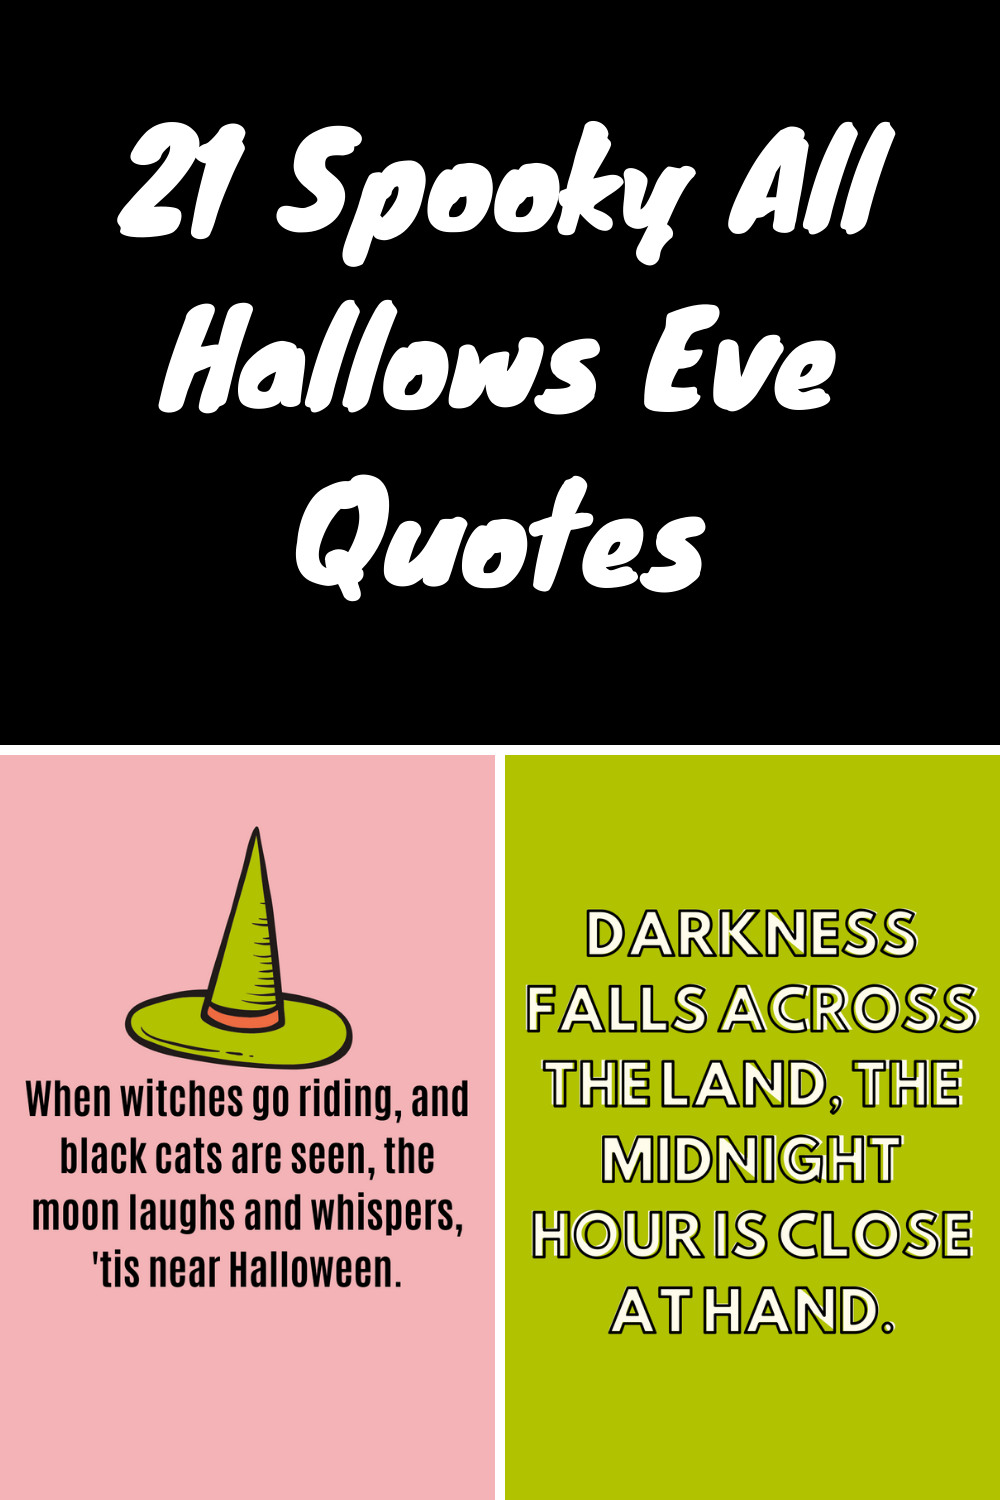 All Hallows Eve Quotes